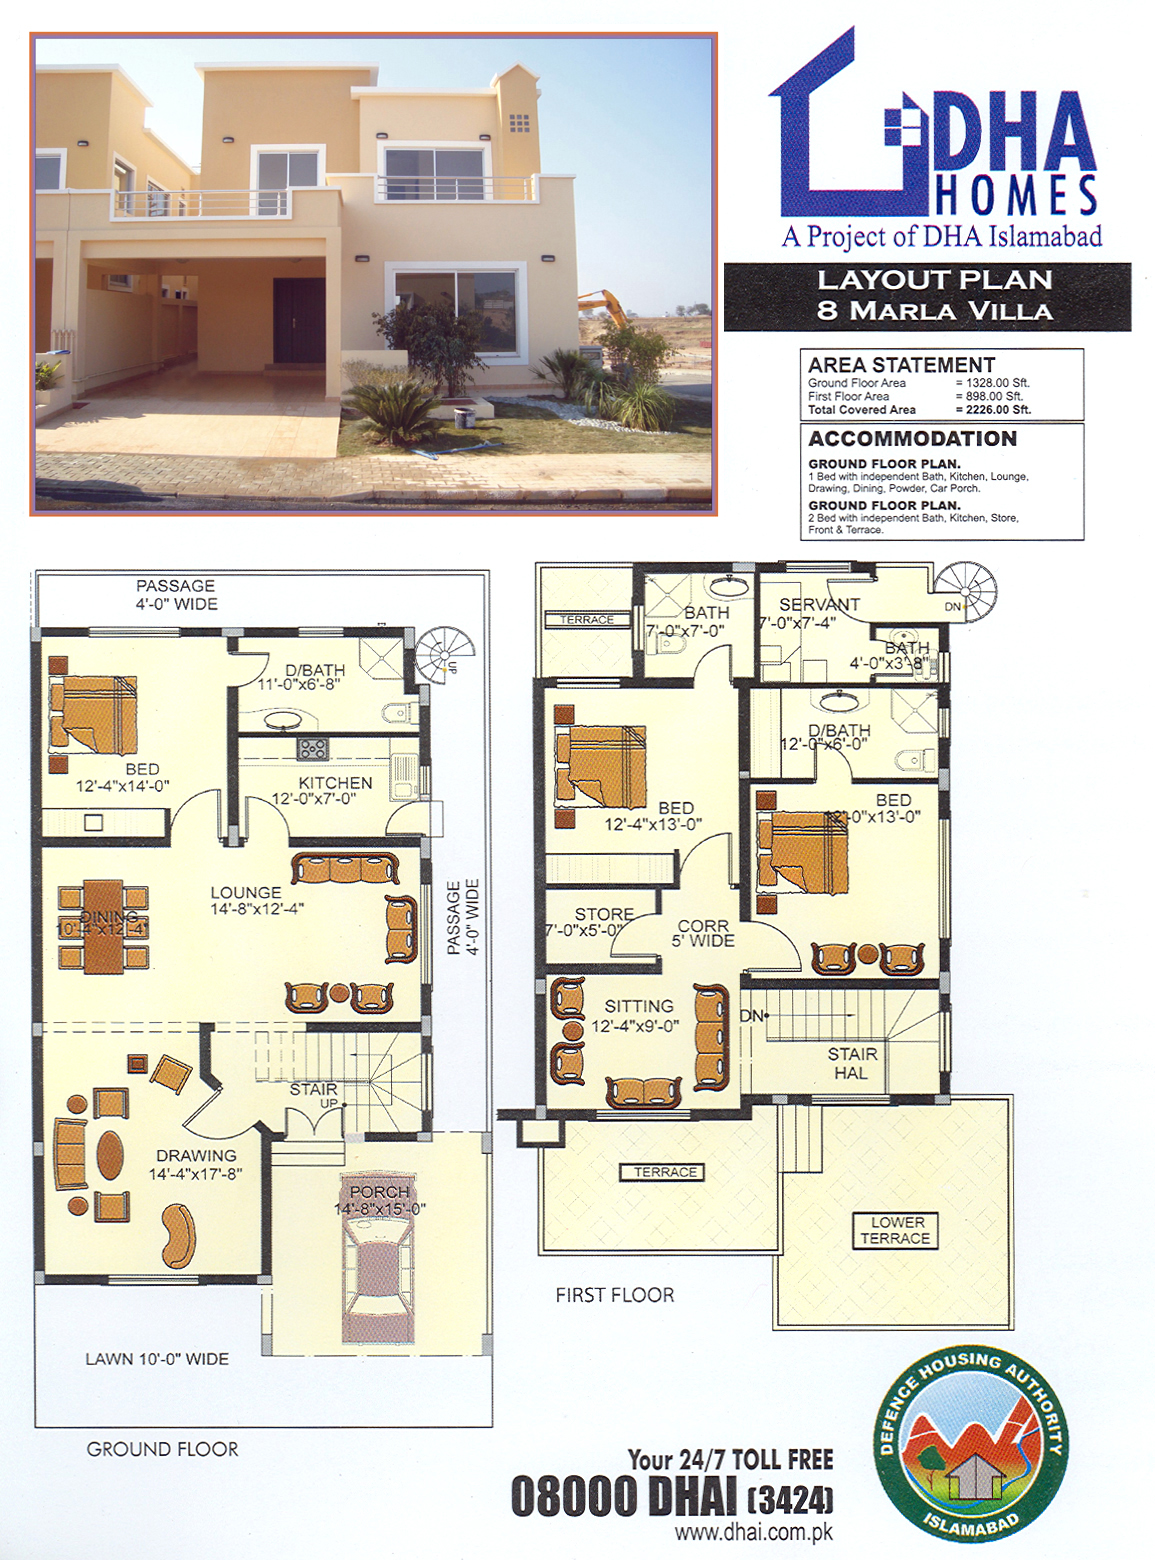 DHA Homes Islamabad Location, Layout Floor Plan and Prices